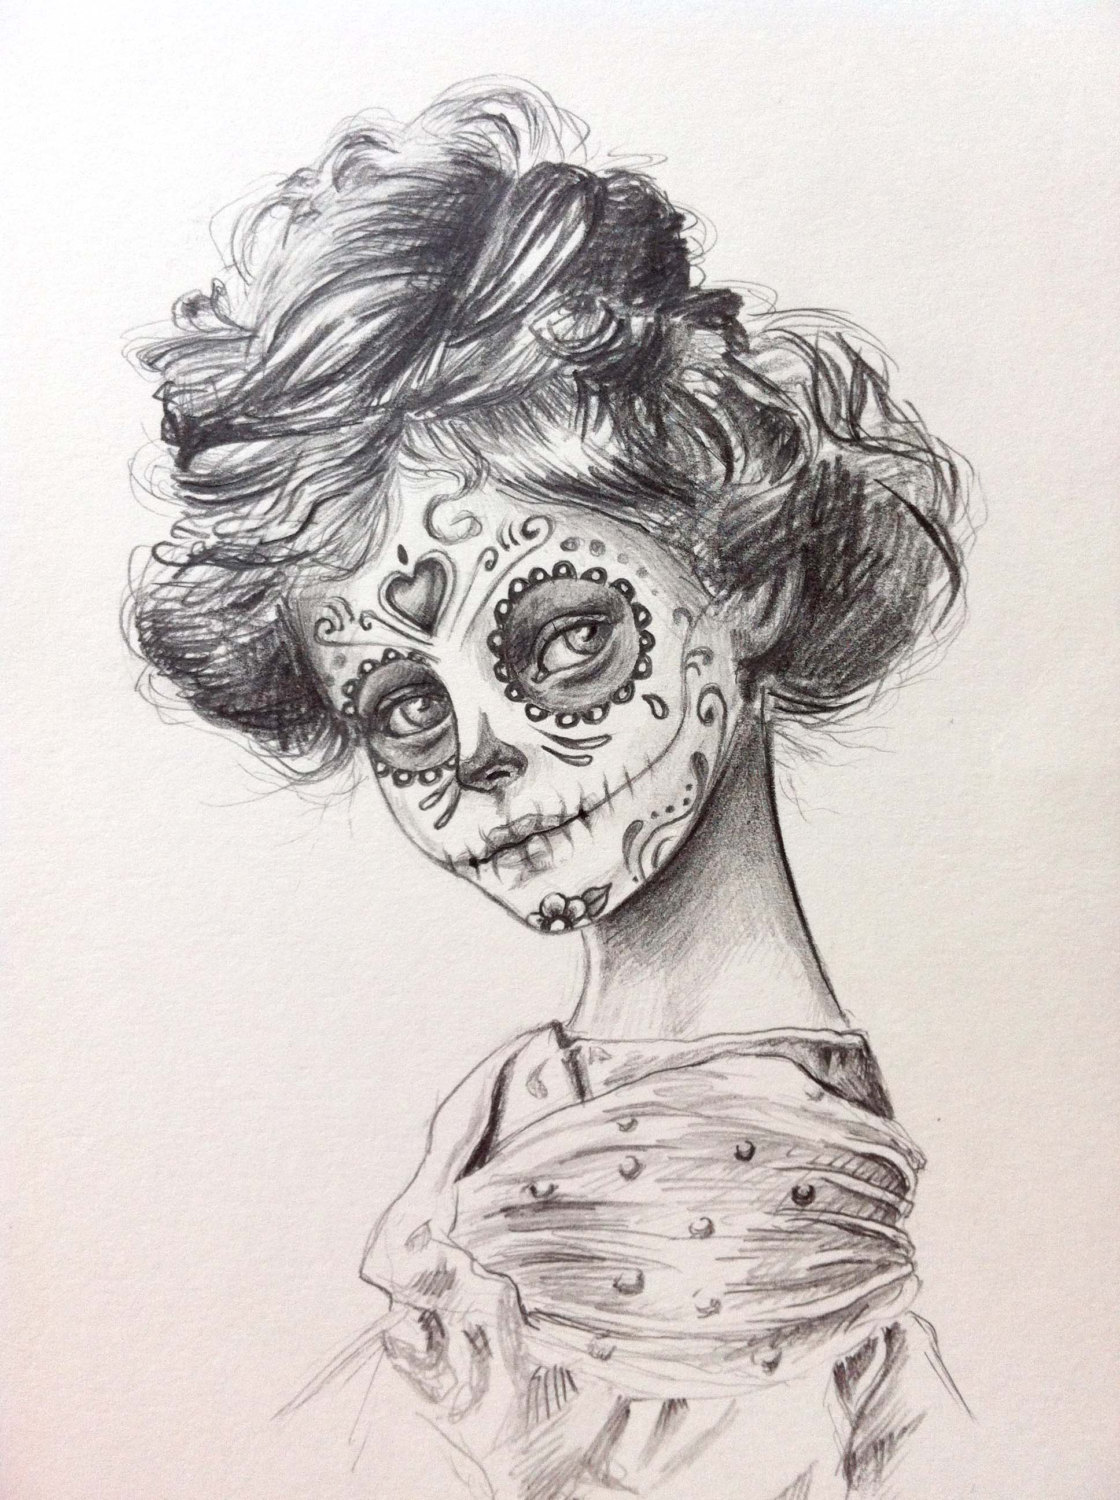 Drawn sugar skull The ₪350 girl dead by